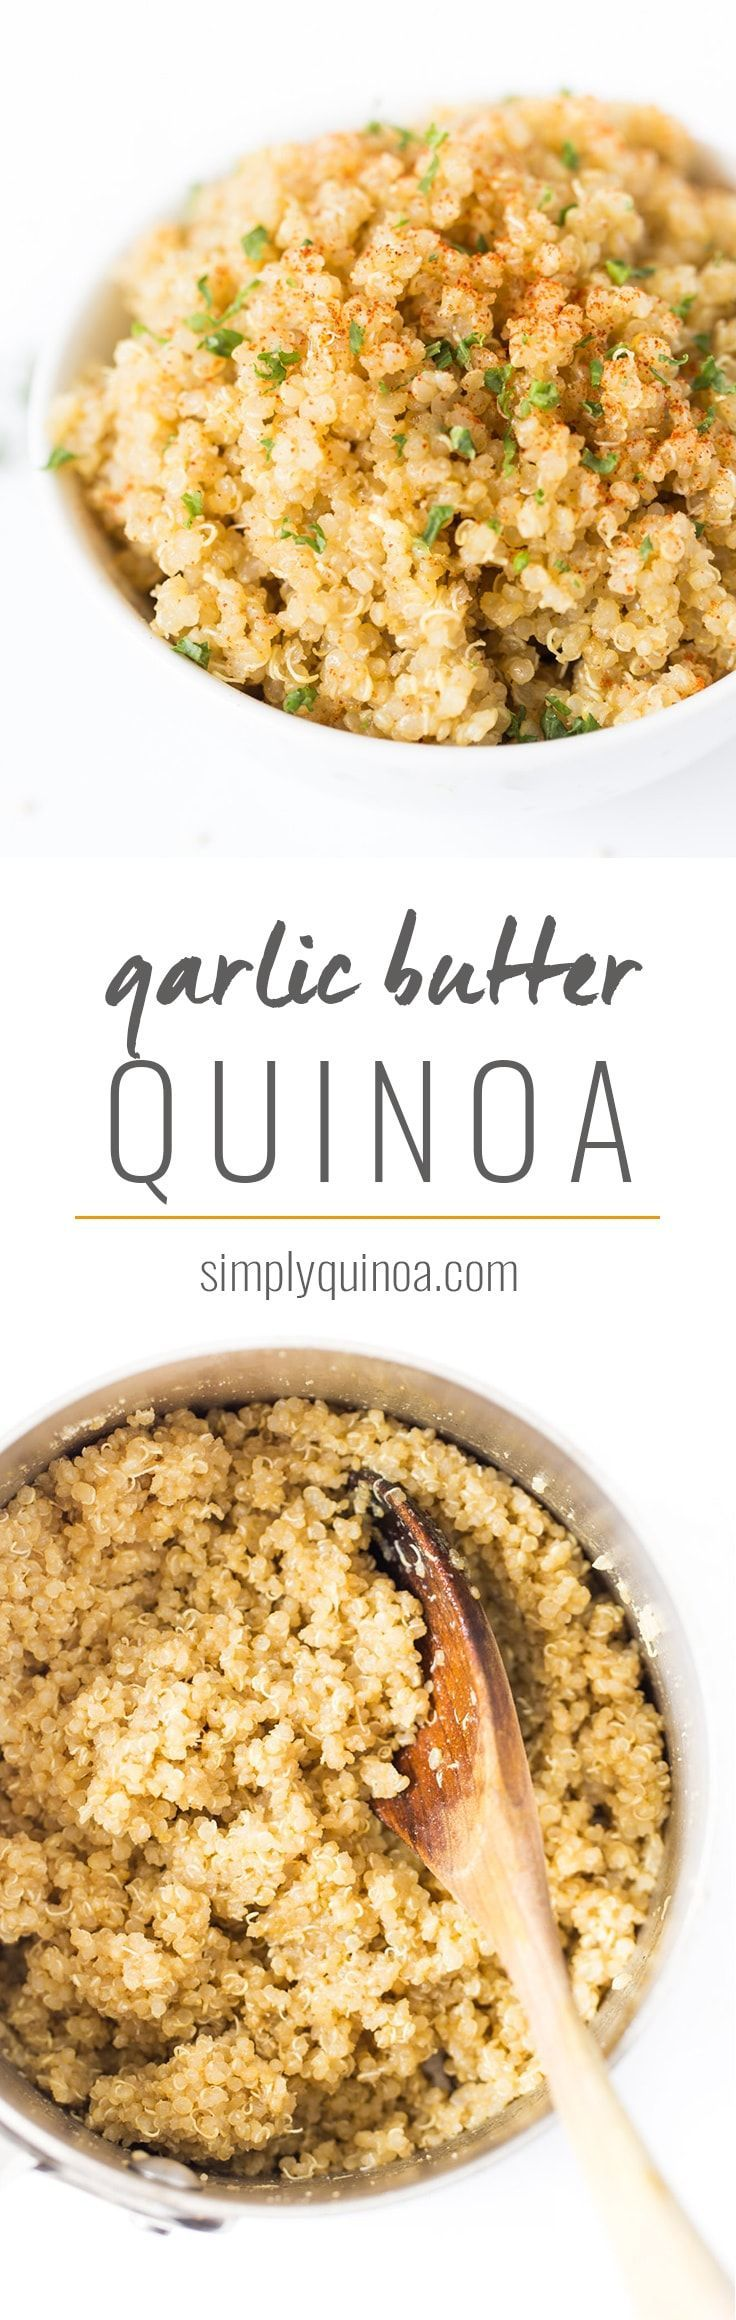 5-Ingredient Garlic Butter Quinoa | Recipe | Garlic butter, Quinoa ...